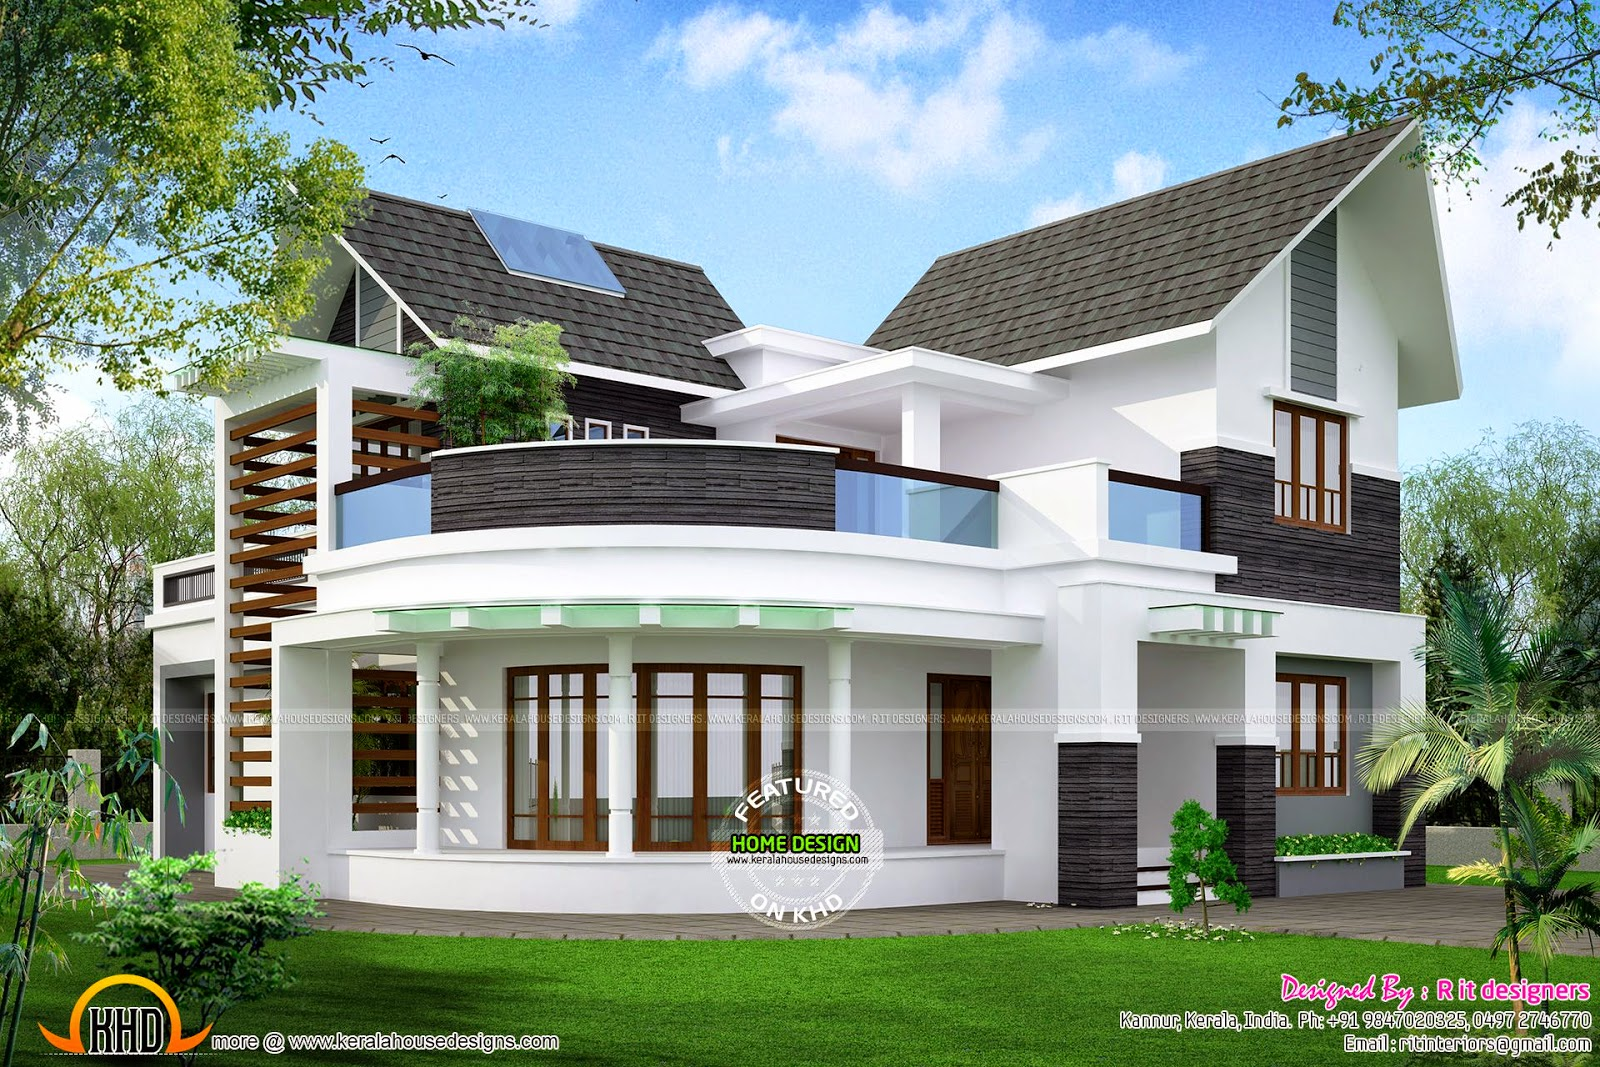 Modern unique 3 bedroom house design ground floor2 for Modern 3 bedroom house plans and designs